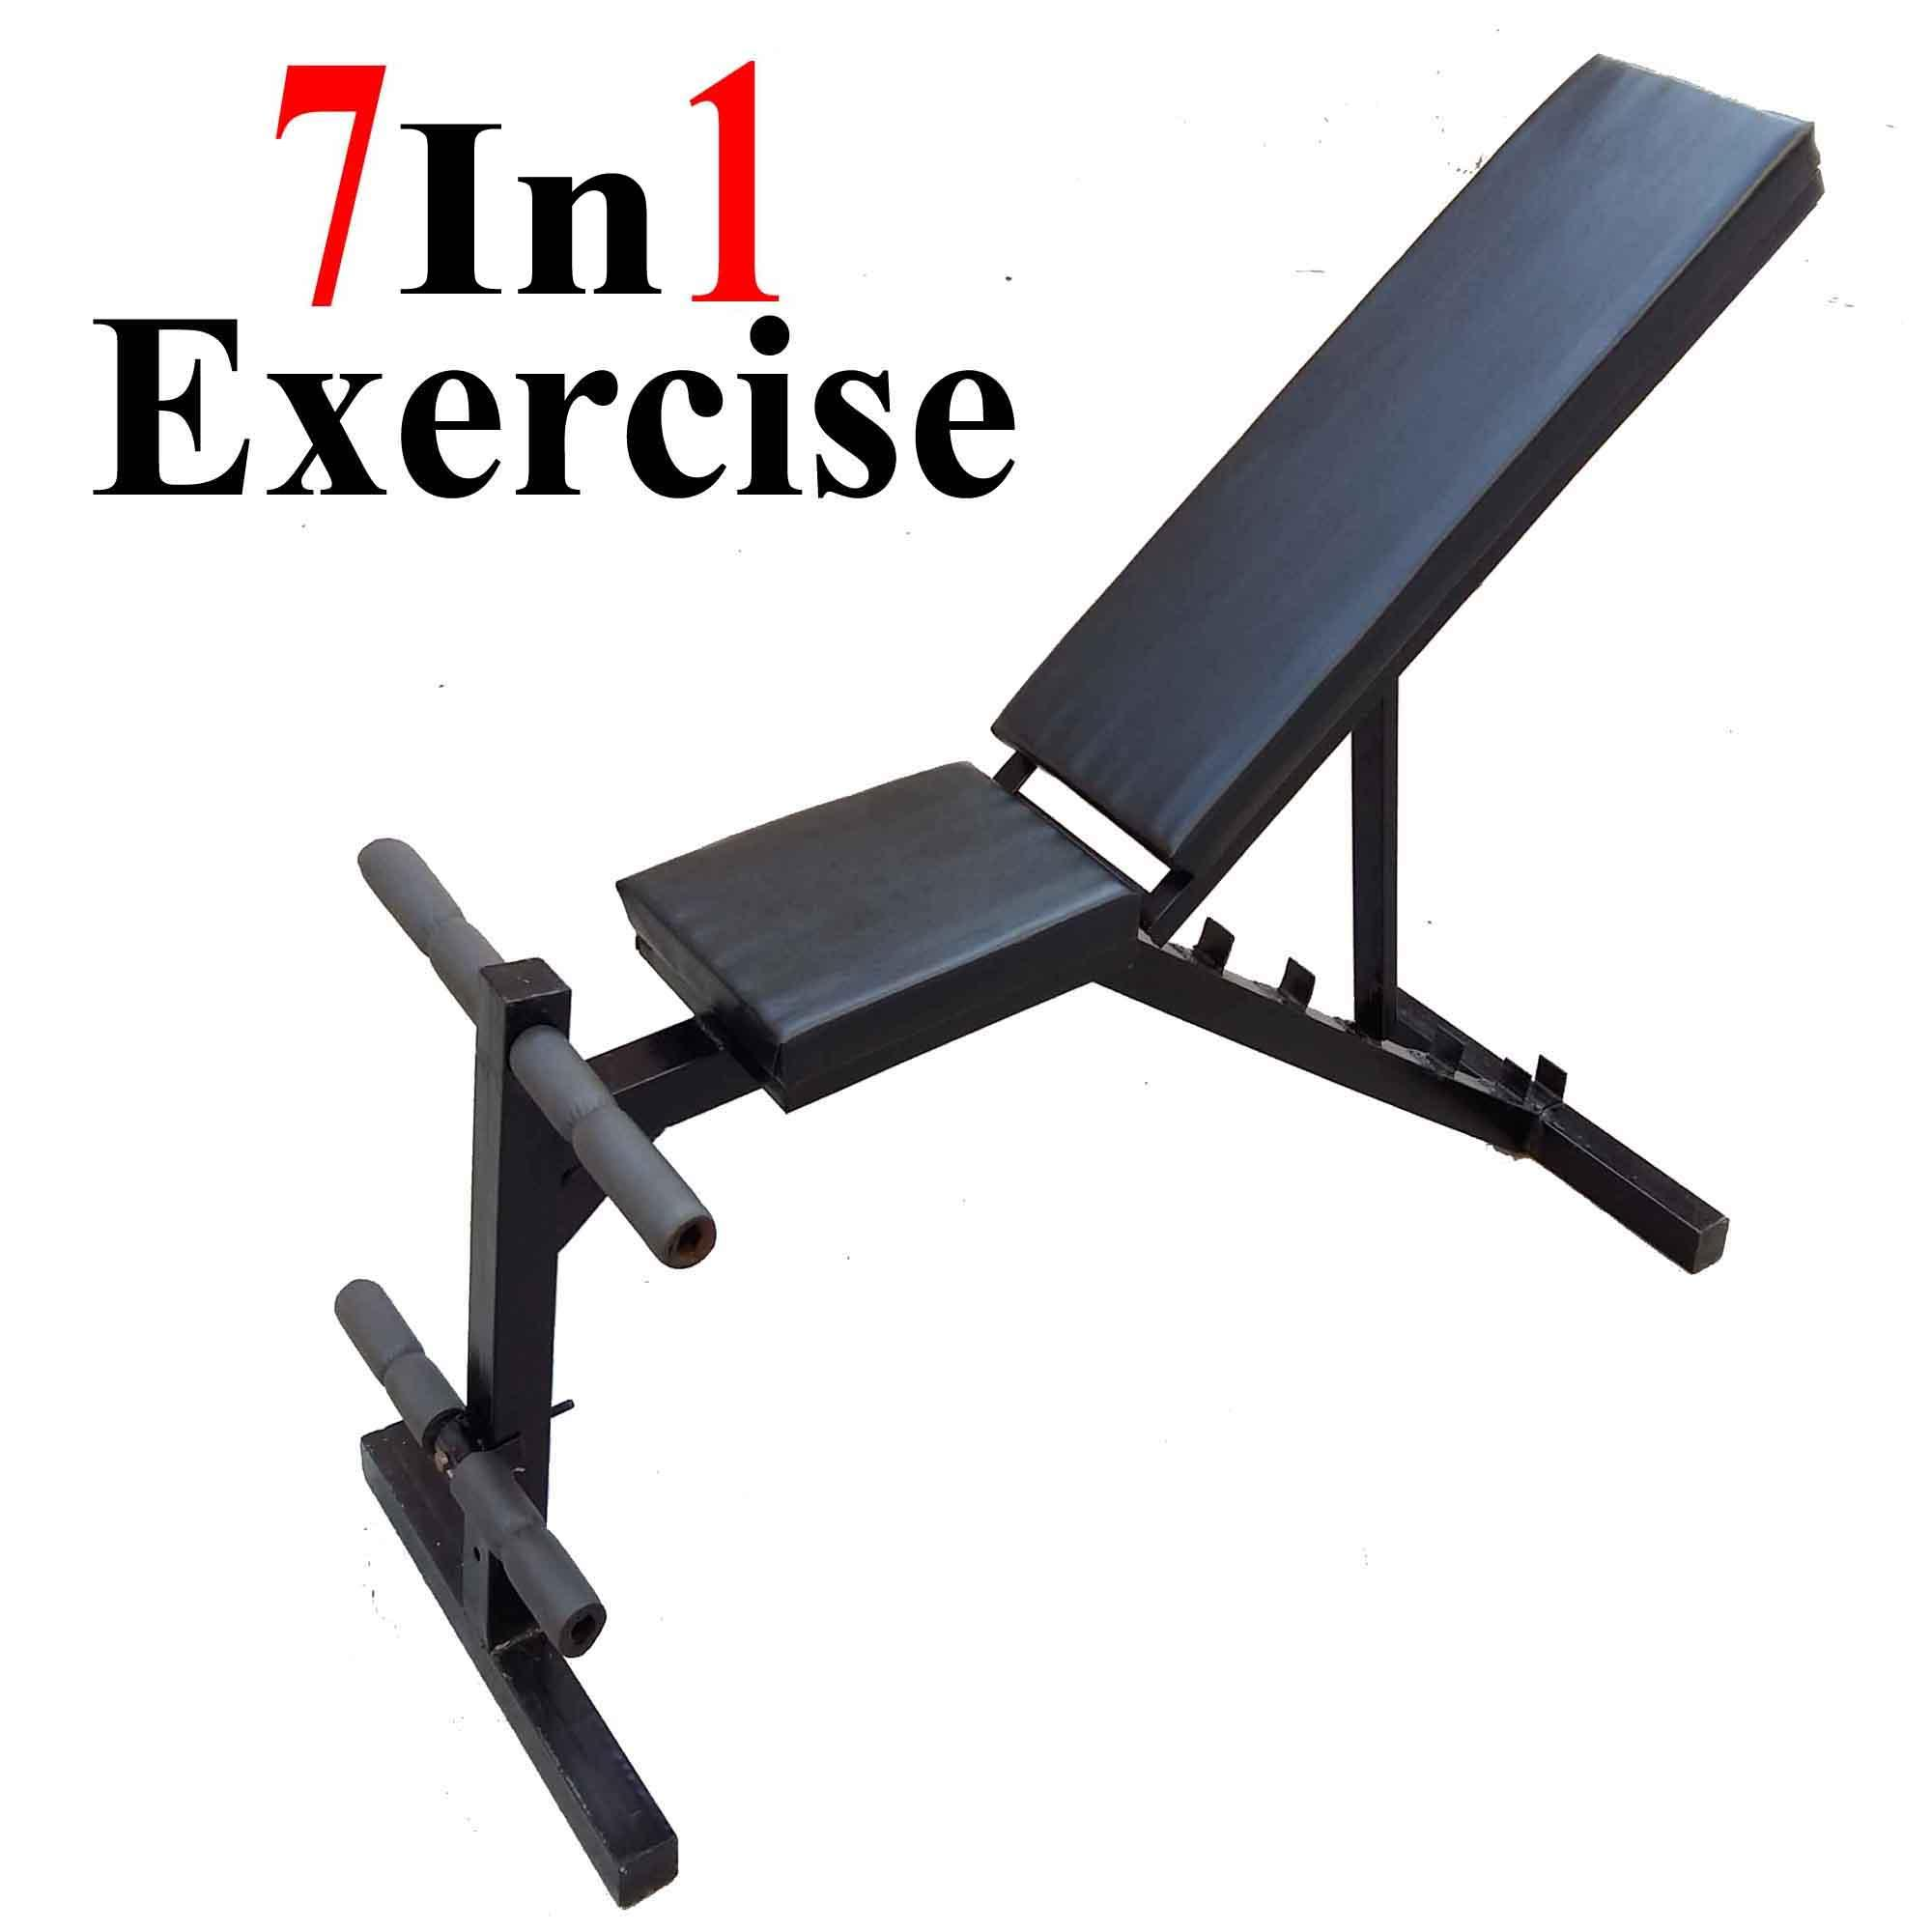 a92d3c184795 7 Position Adjustable Chest Bench Press Incline Decline Straight Leg Chest  Exercise Weight Lifting Body Building